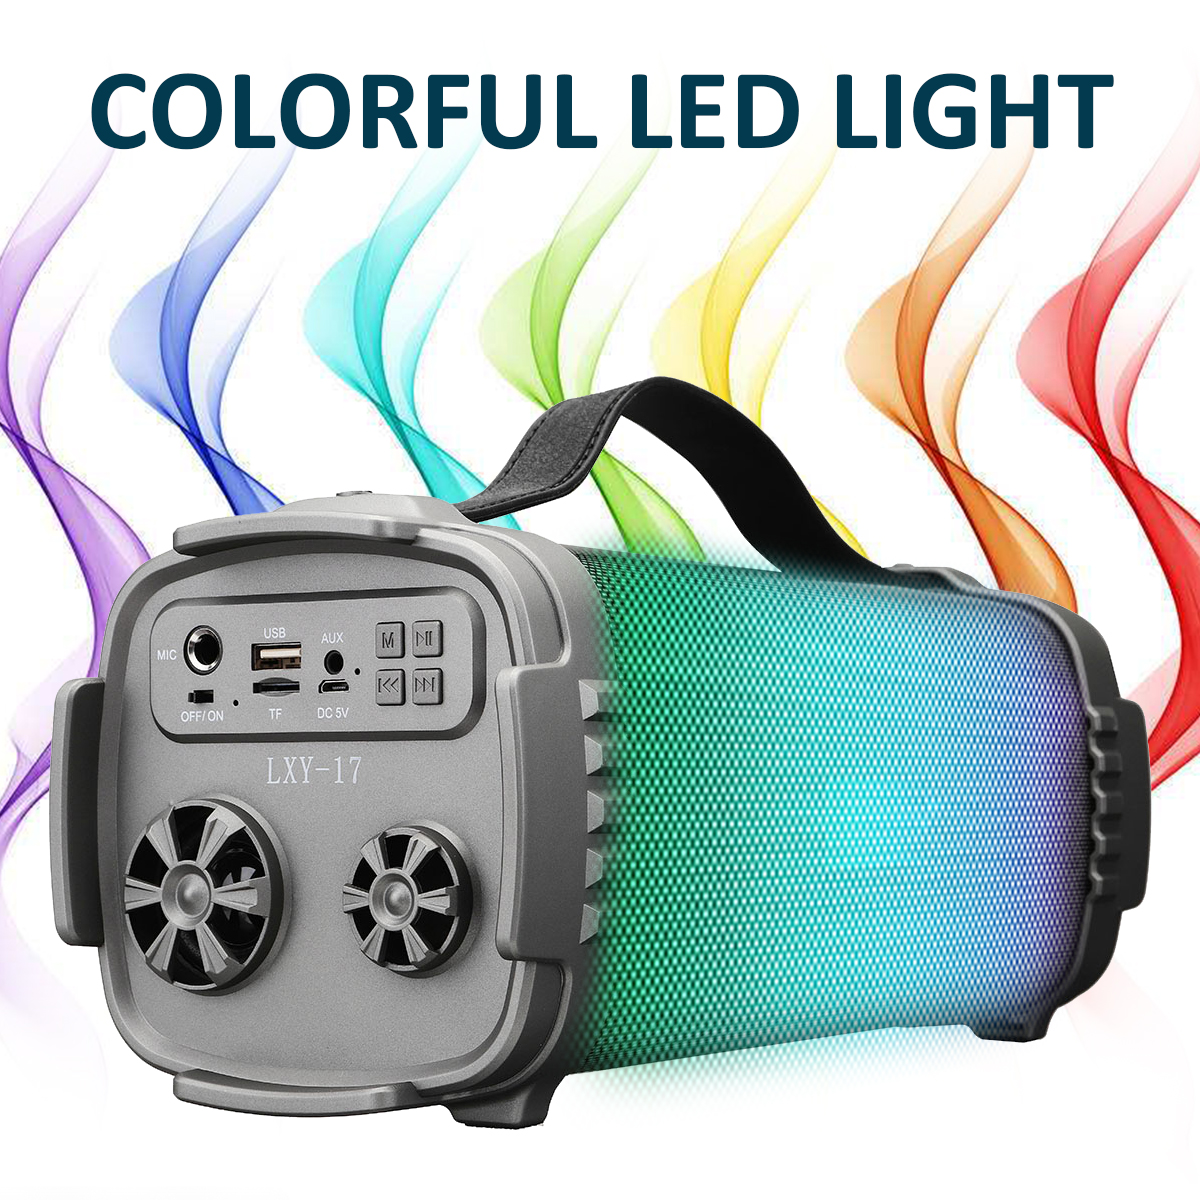 Portable Wireless bluetooth Speaker Colorful LED Light Outdoor Stereo Bass FM Radio TF Card Speaker